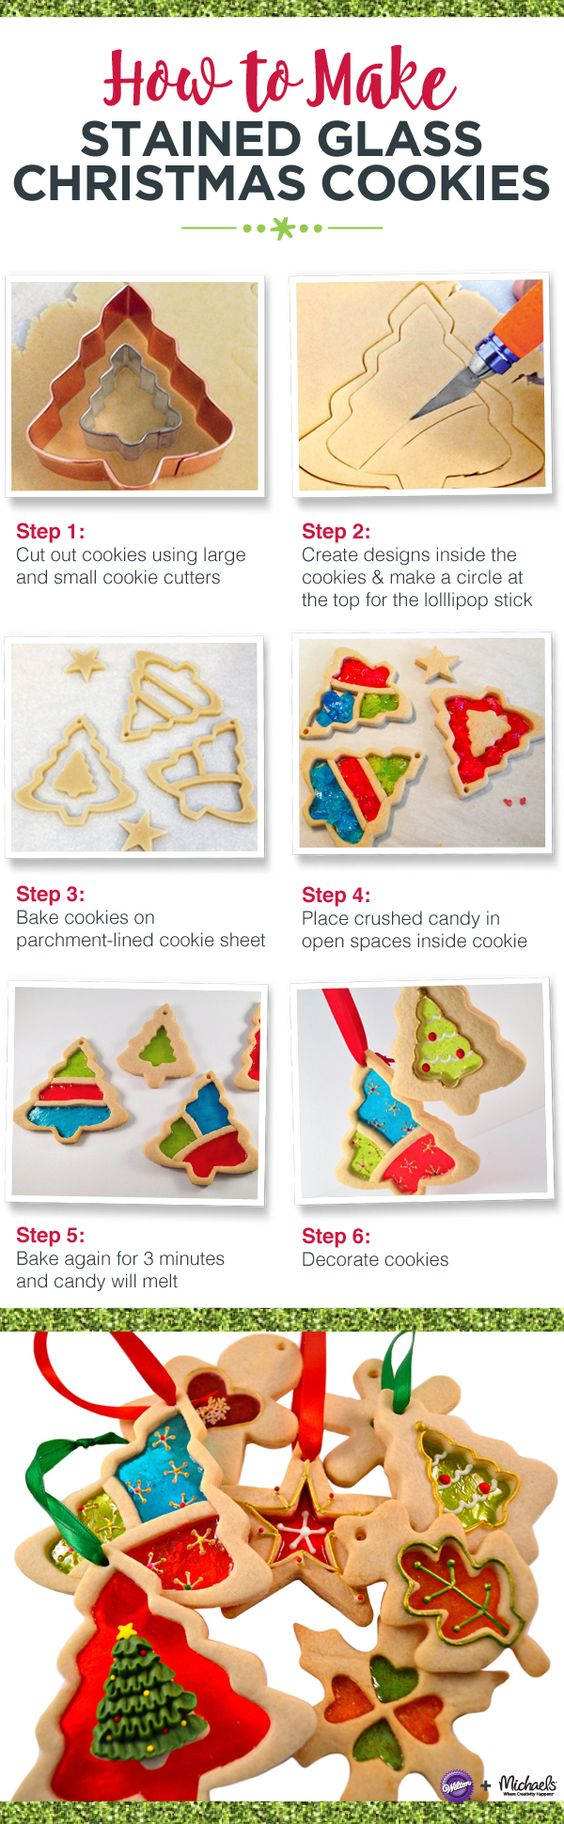 How to make stained glass Christmas cookies: